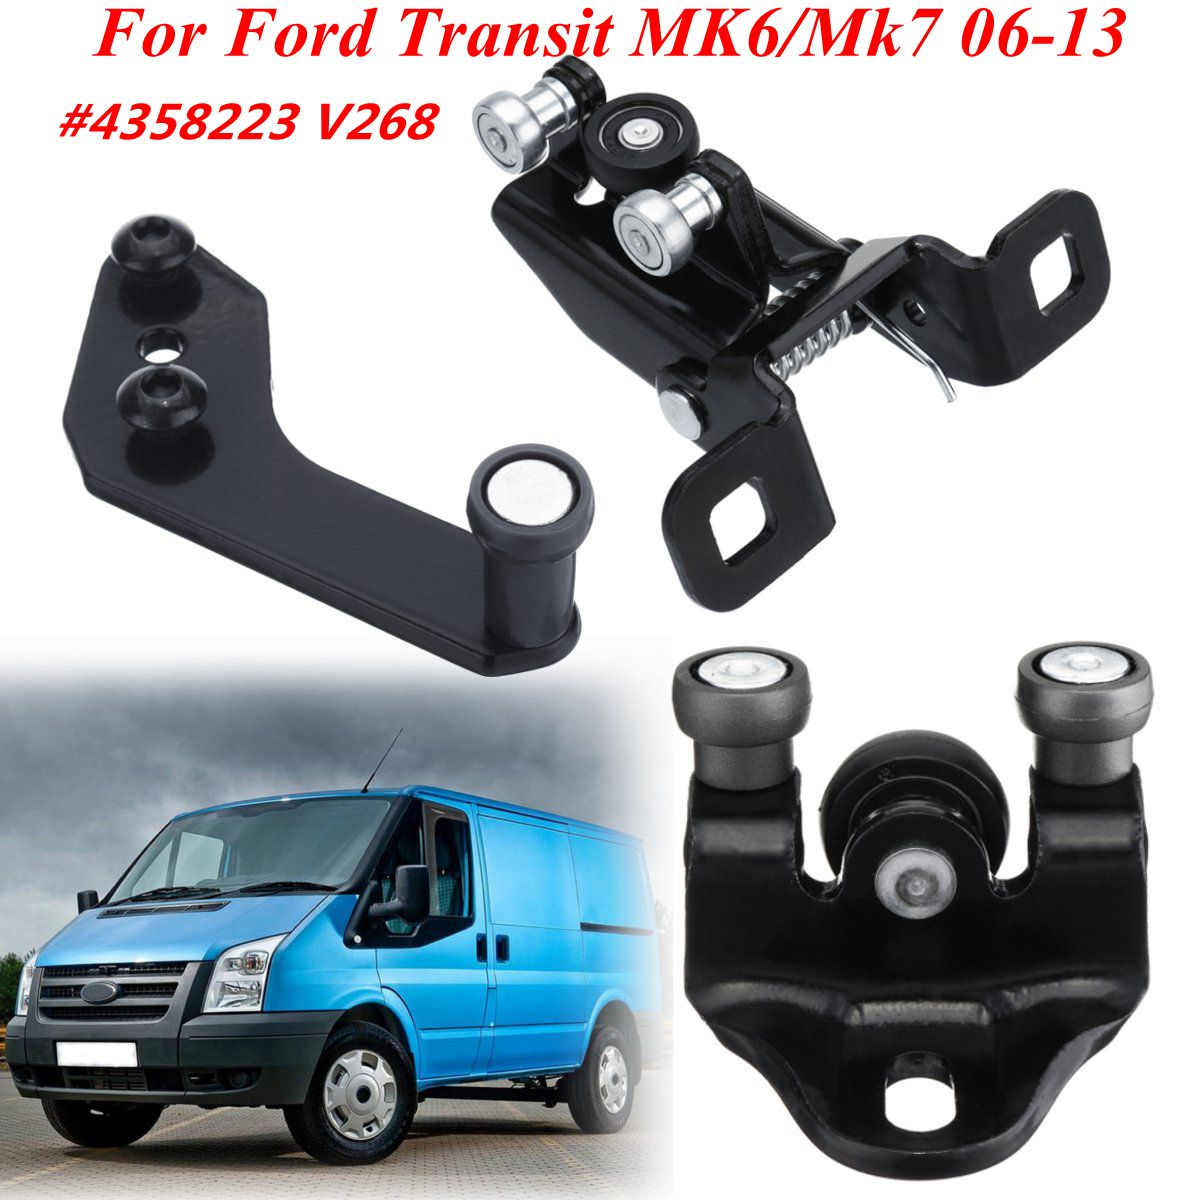 Side Sliding Door Top Middle Bottom Roller Runner Left/Right Side FOR Ford Transit MK7/MK6 2006-2013 4358223 V268 AJ - 4358223